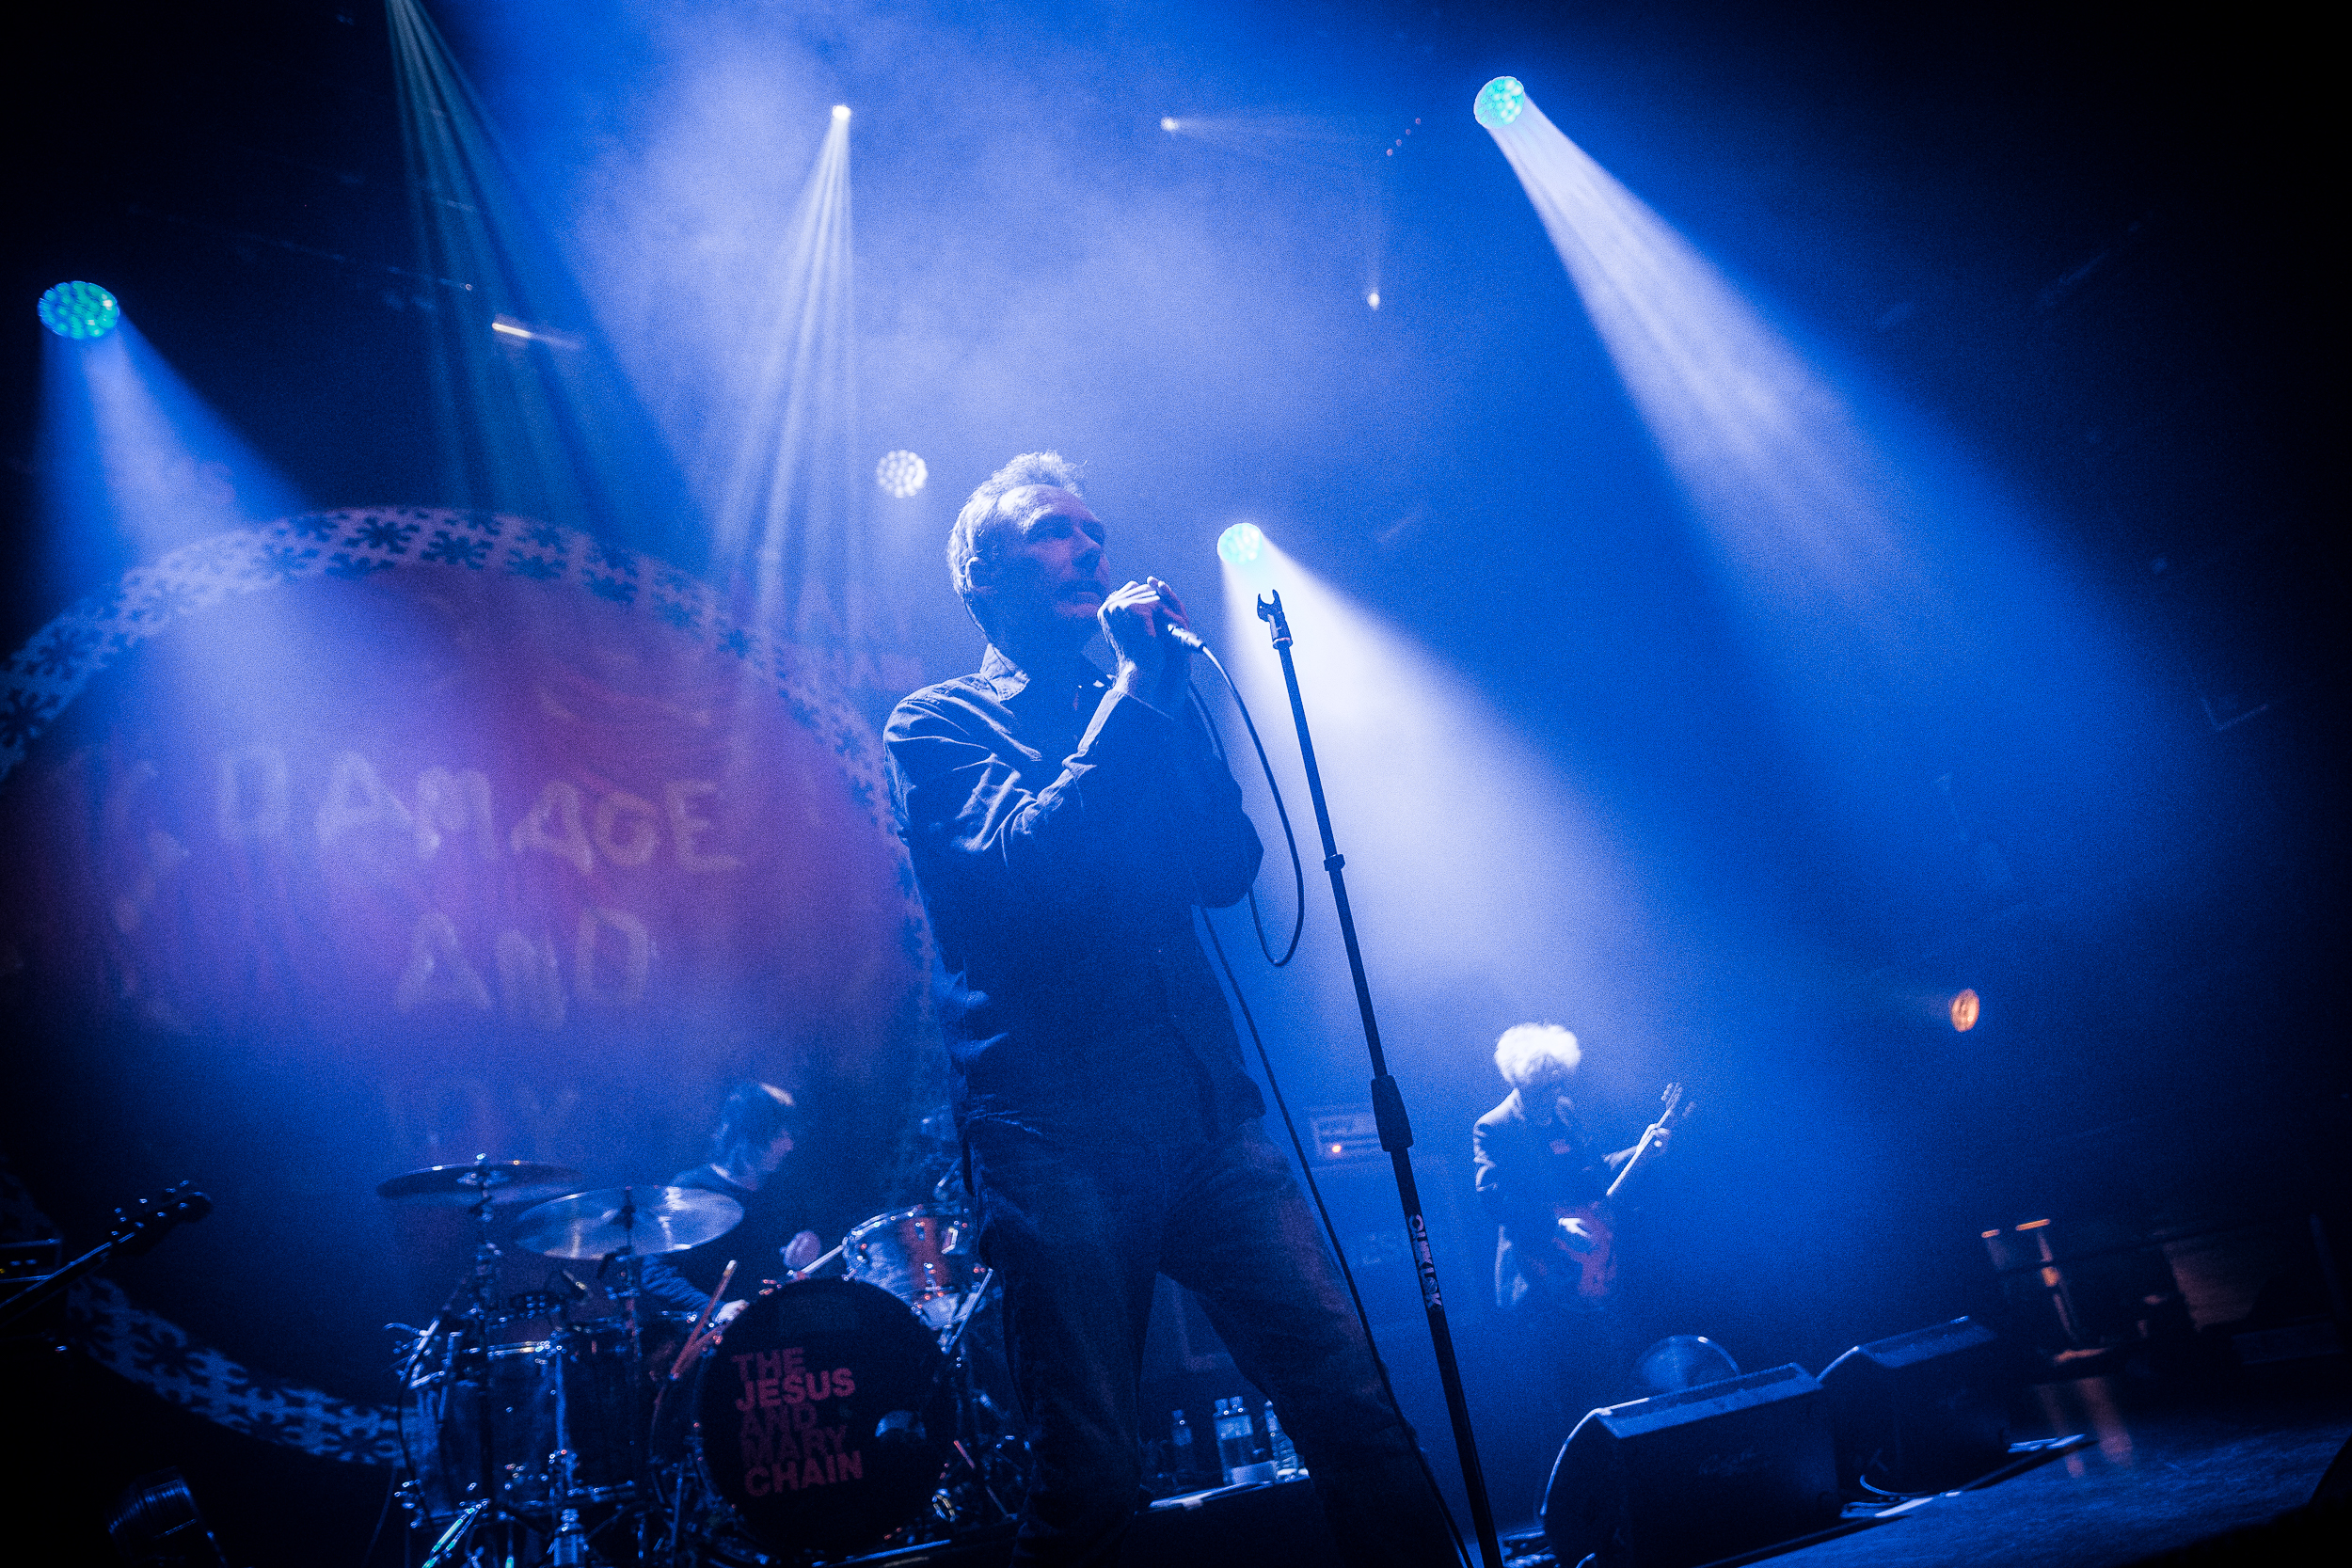 The Jesus and Mary Chain at Rockefeller, Oslo